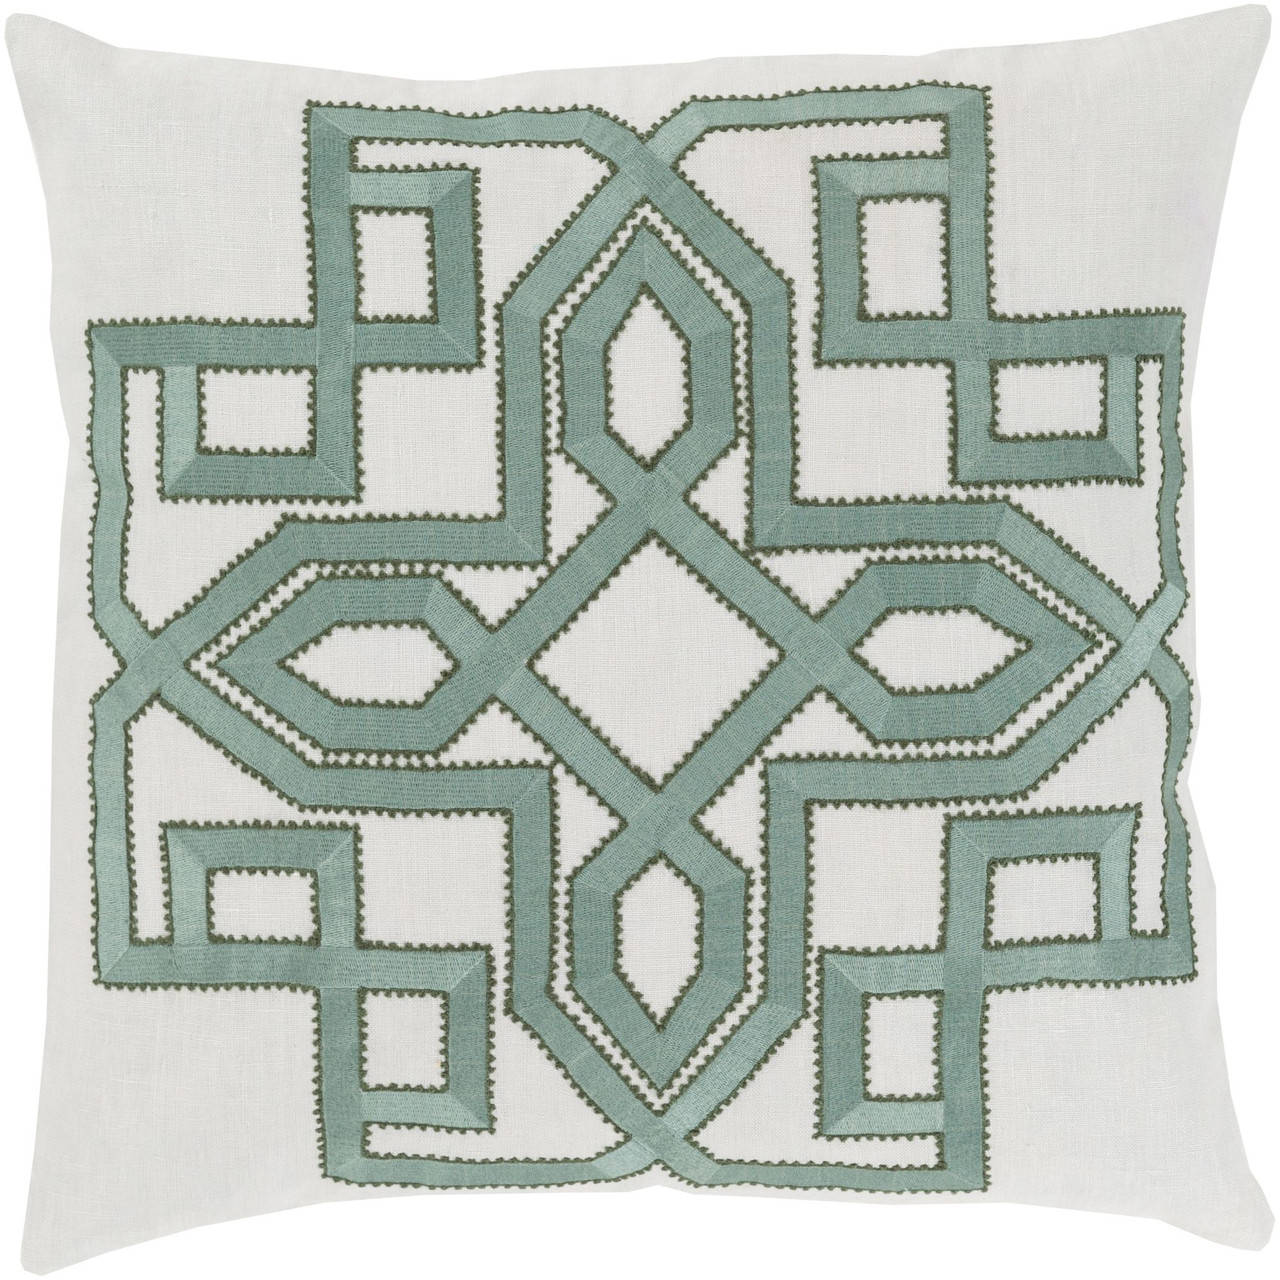 18 sage green and gray lavish labyrinth square throw pillow cover